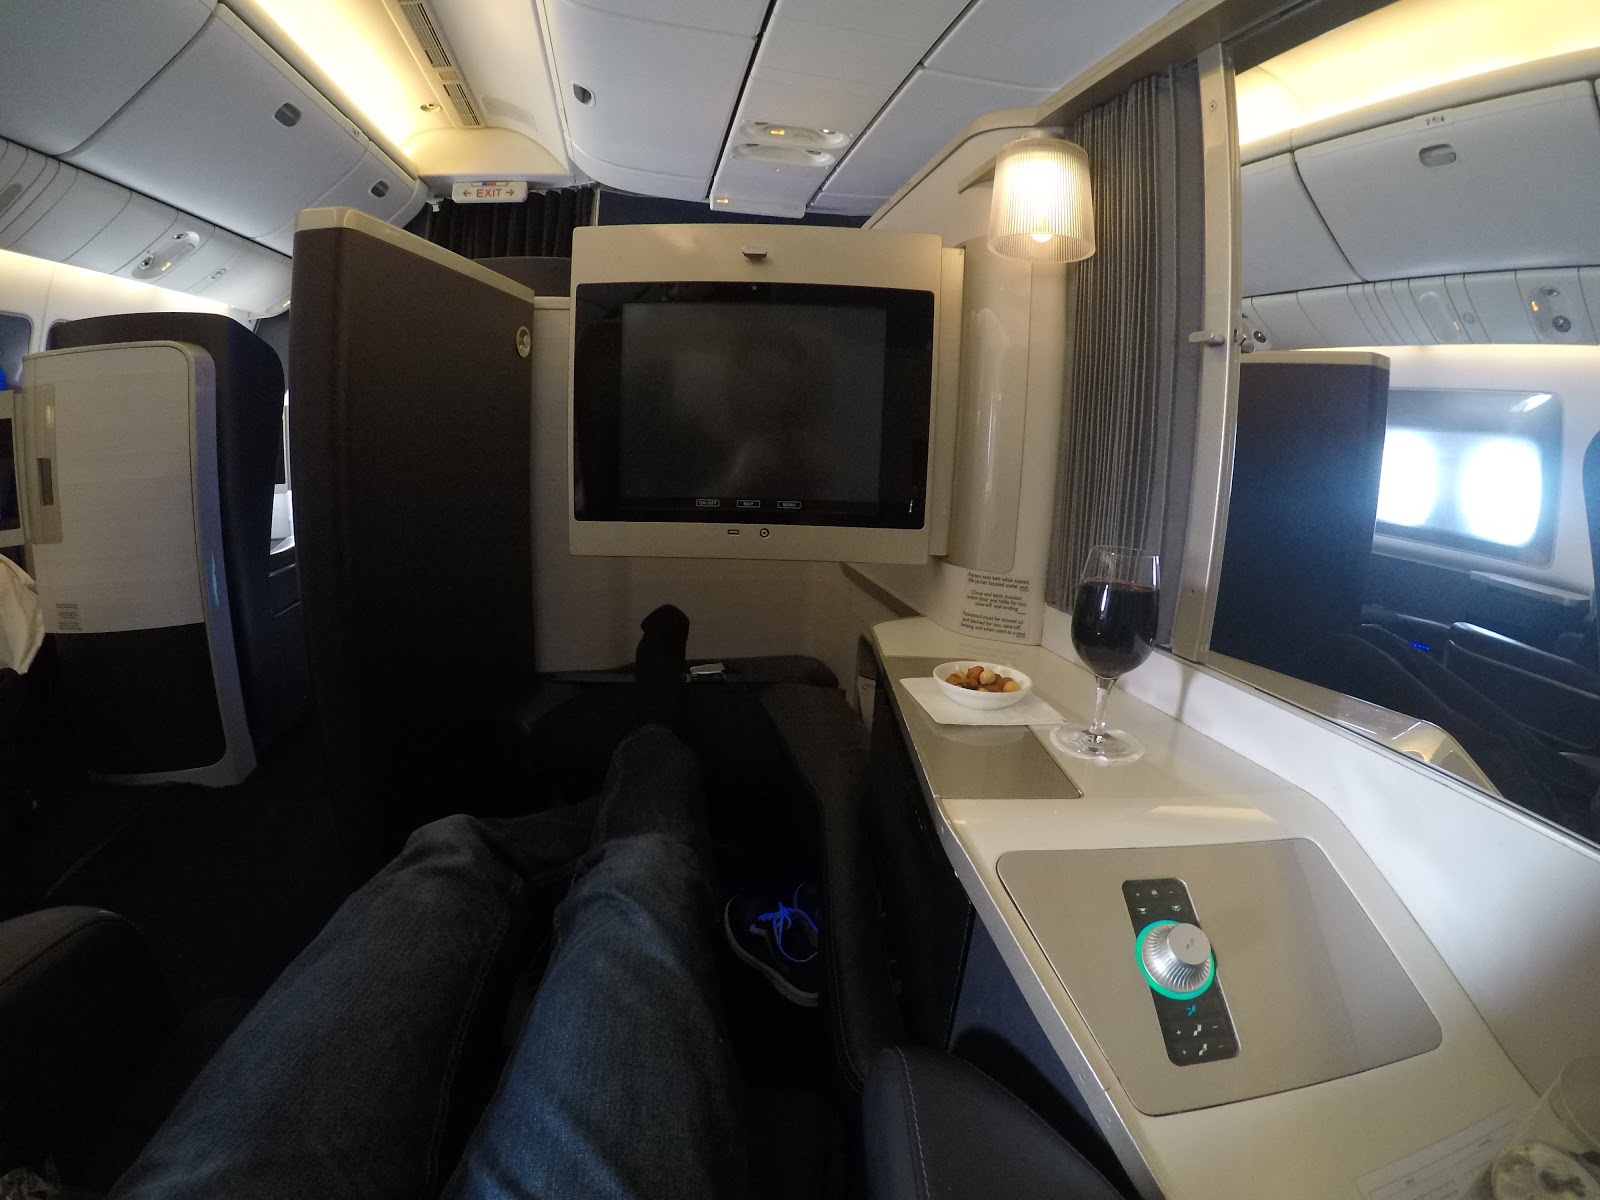 British Airways First Class Review 2018 (with video) | Cal ...